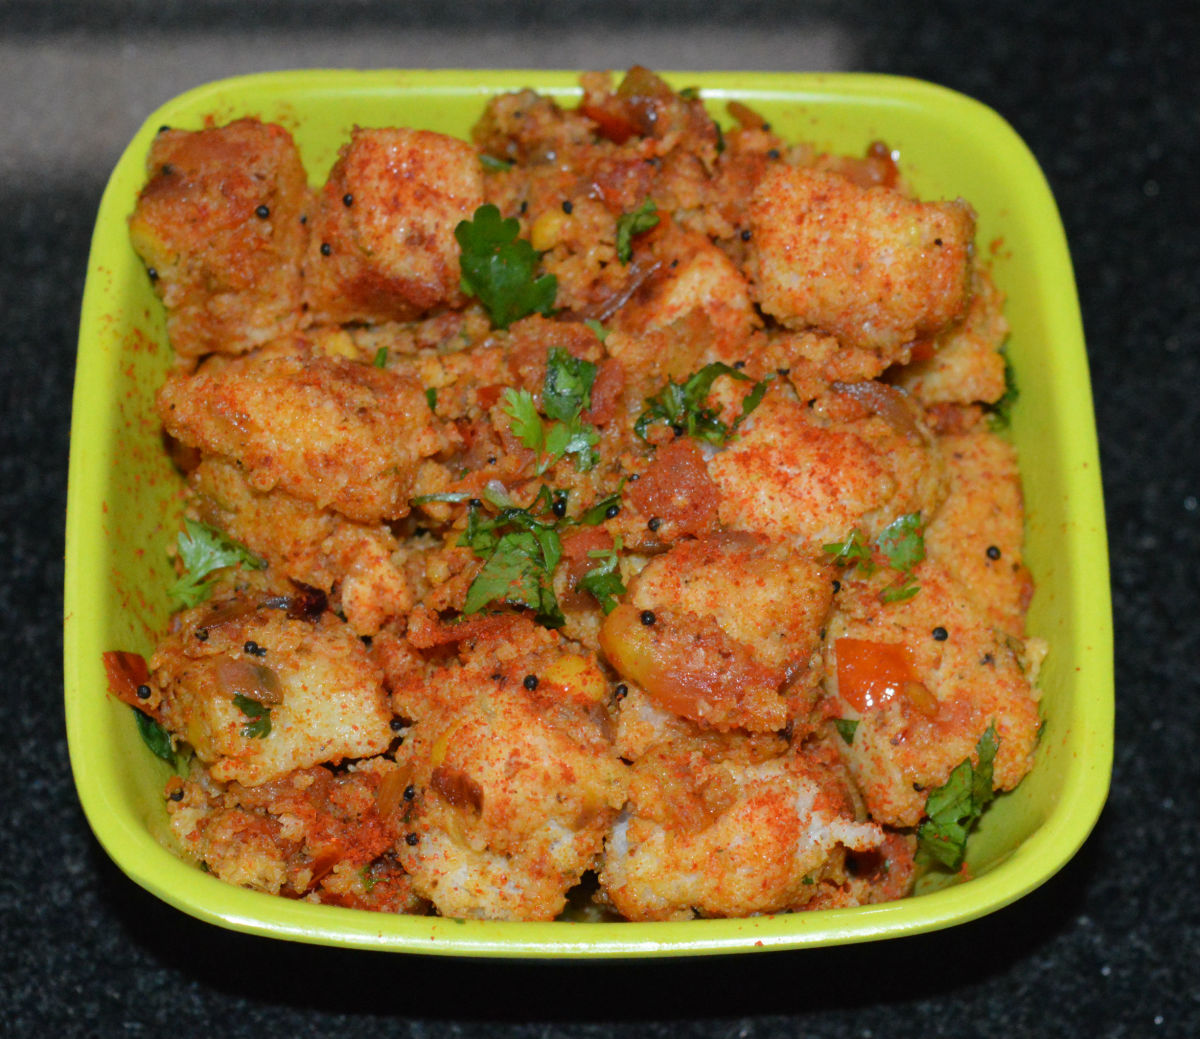 How to Make Spicy Tava Idli: Recipe and Photos